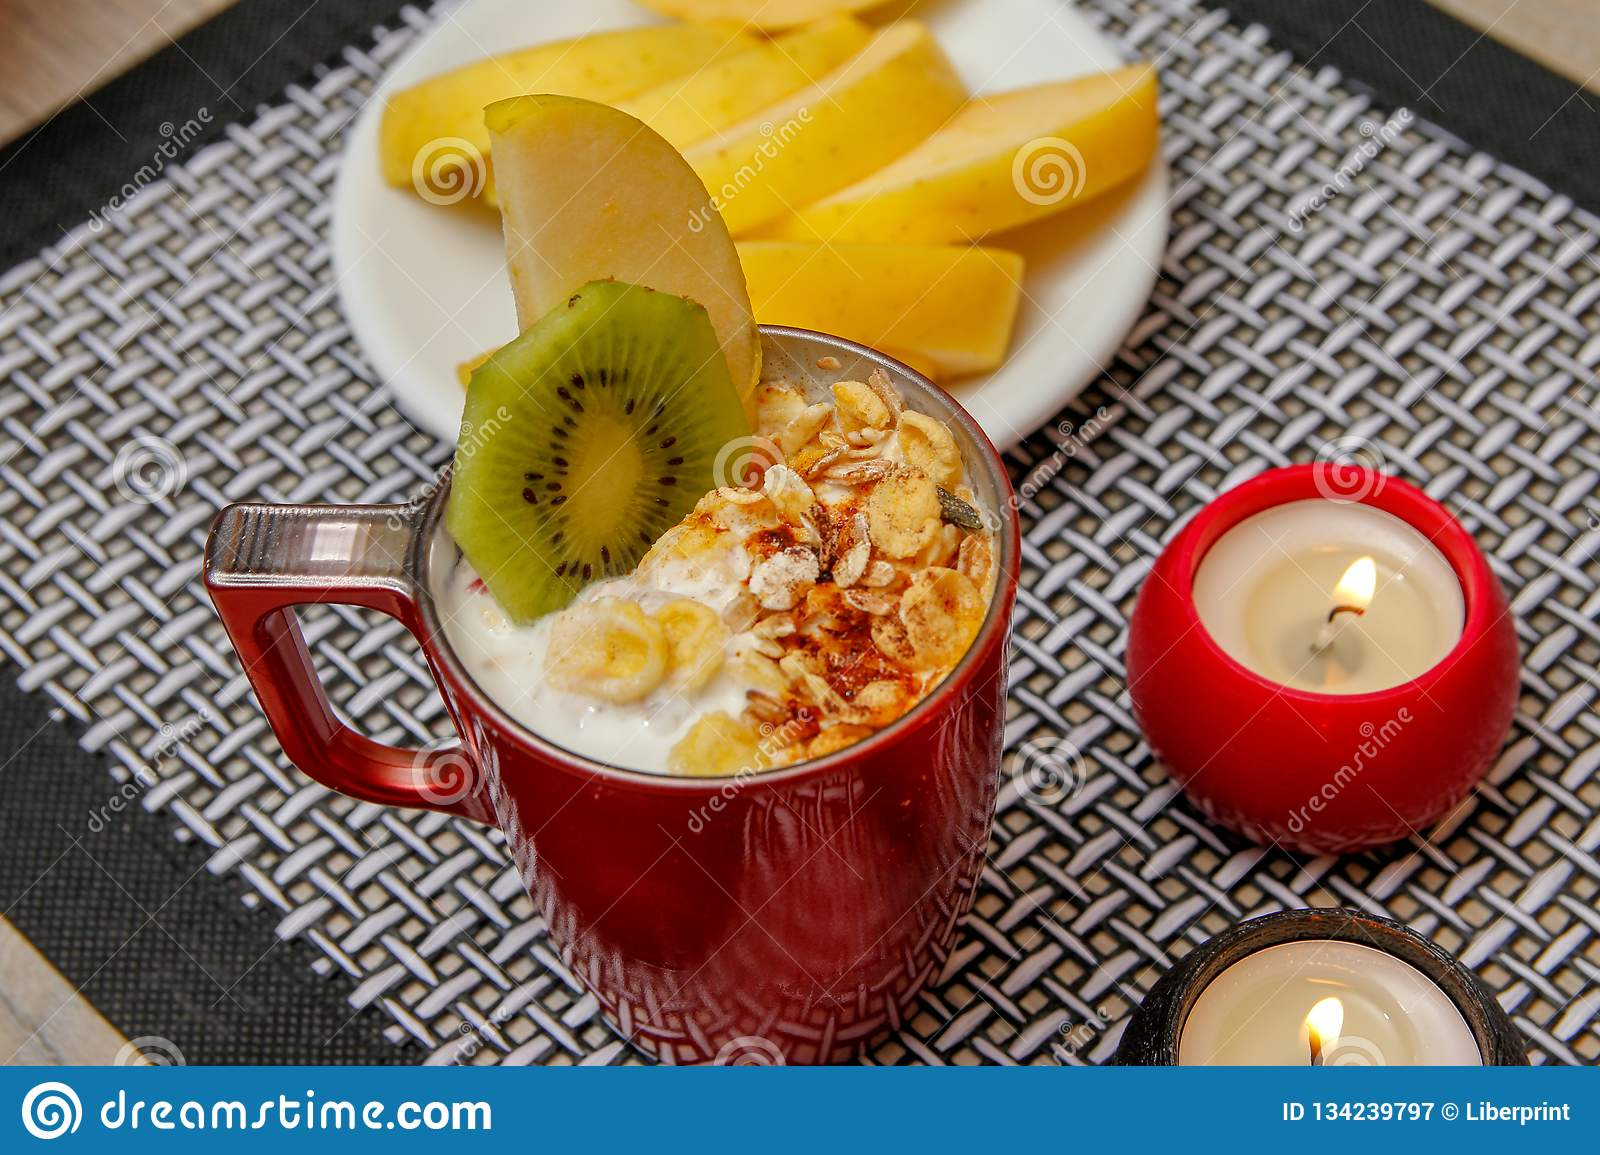 Healthy food, various seeds, integral cereals and dried fruits in yogurt. Fresh fruit, apple, kiwi and persimmon